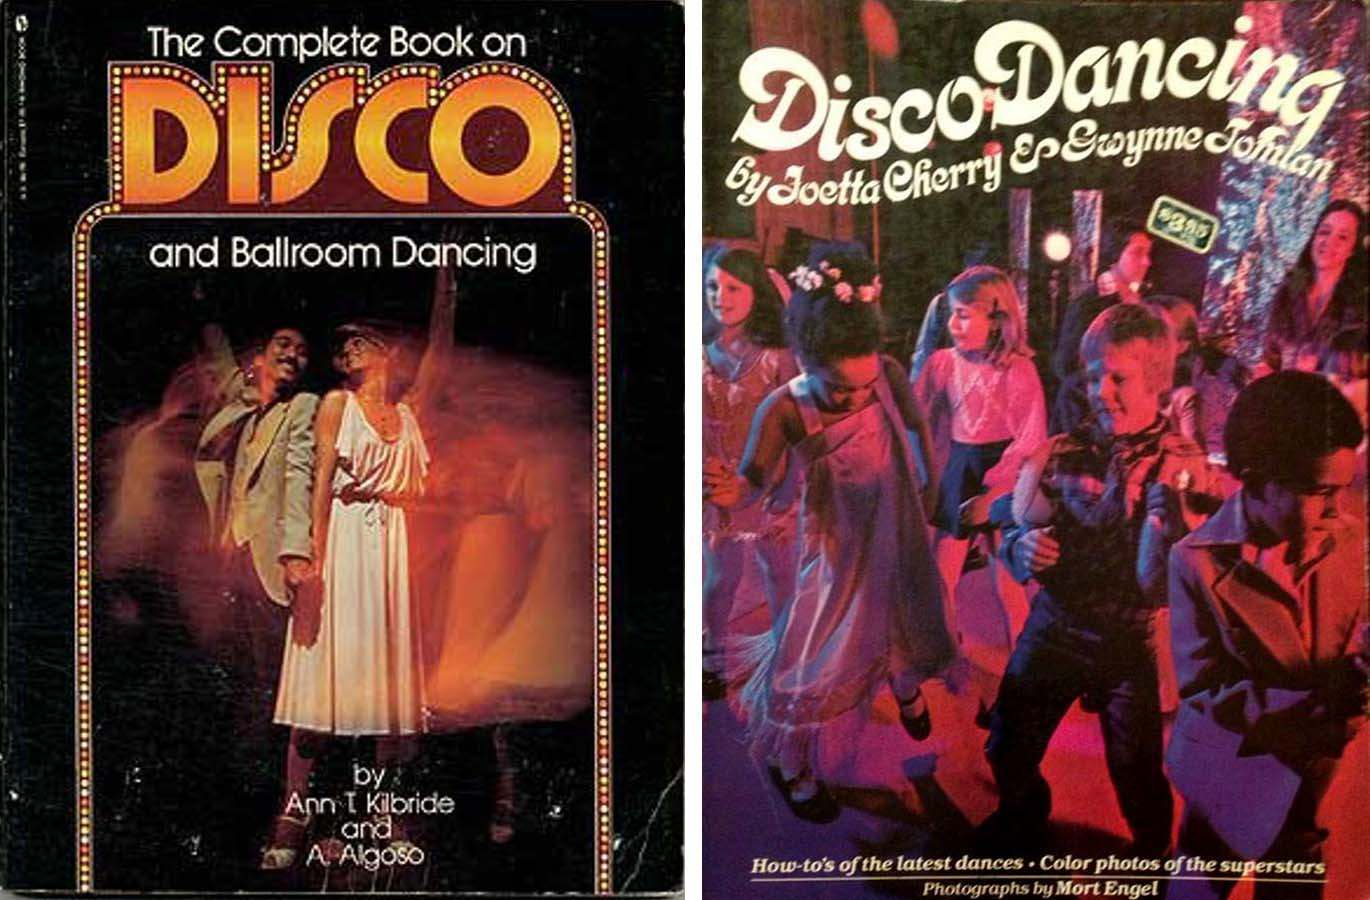 1979 Vintage The Complete Book on Disco and Ballroom Dancing by Ann T Kilbride